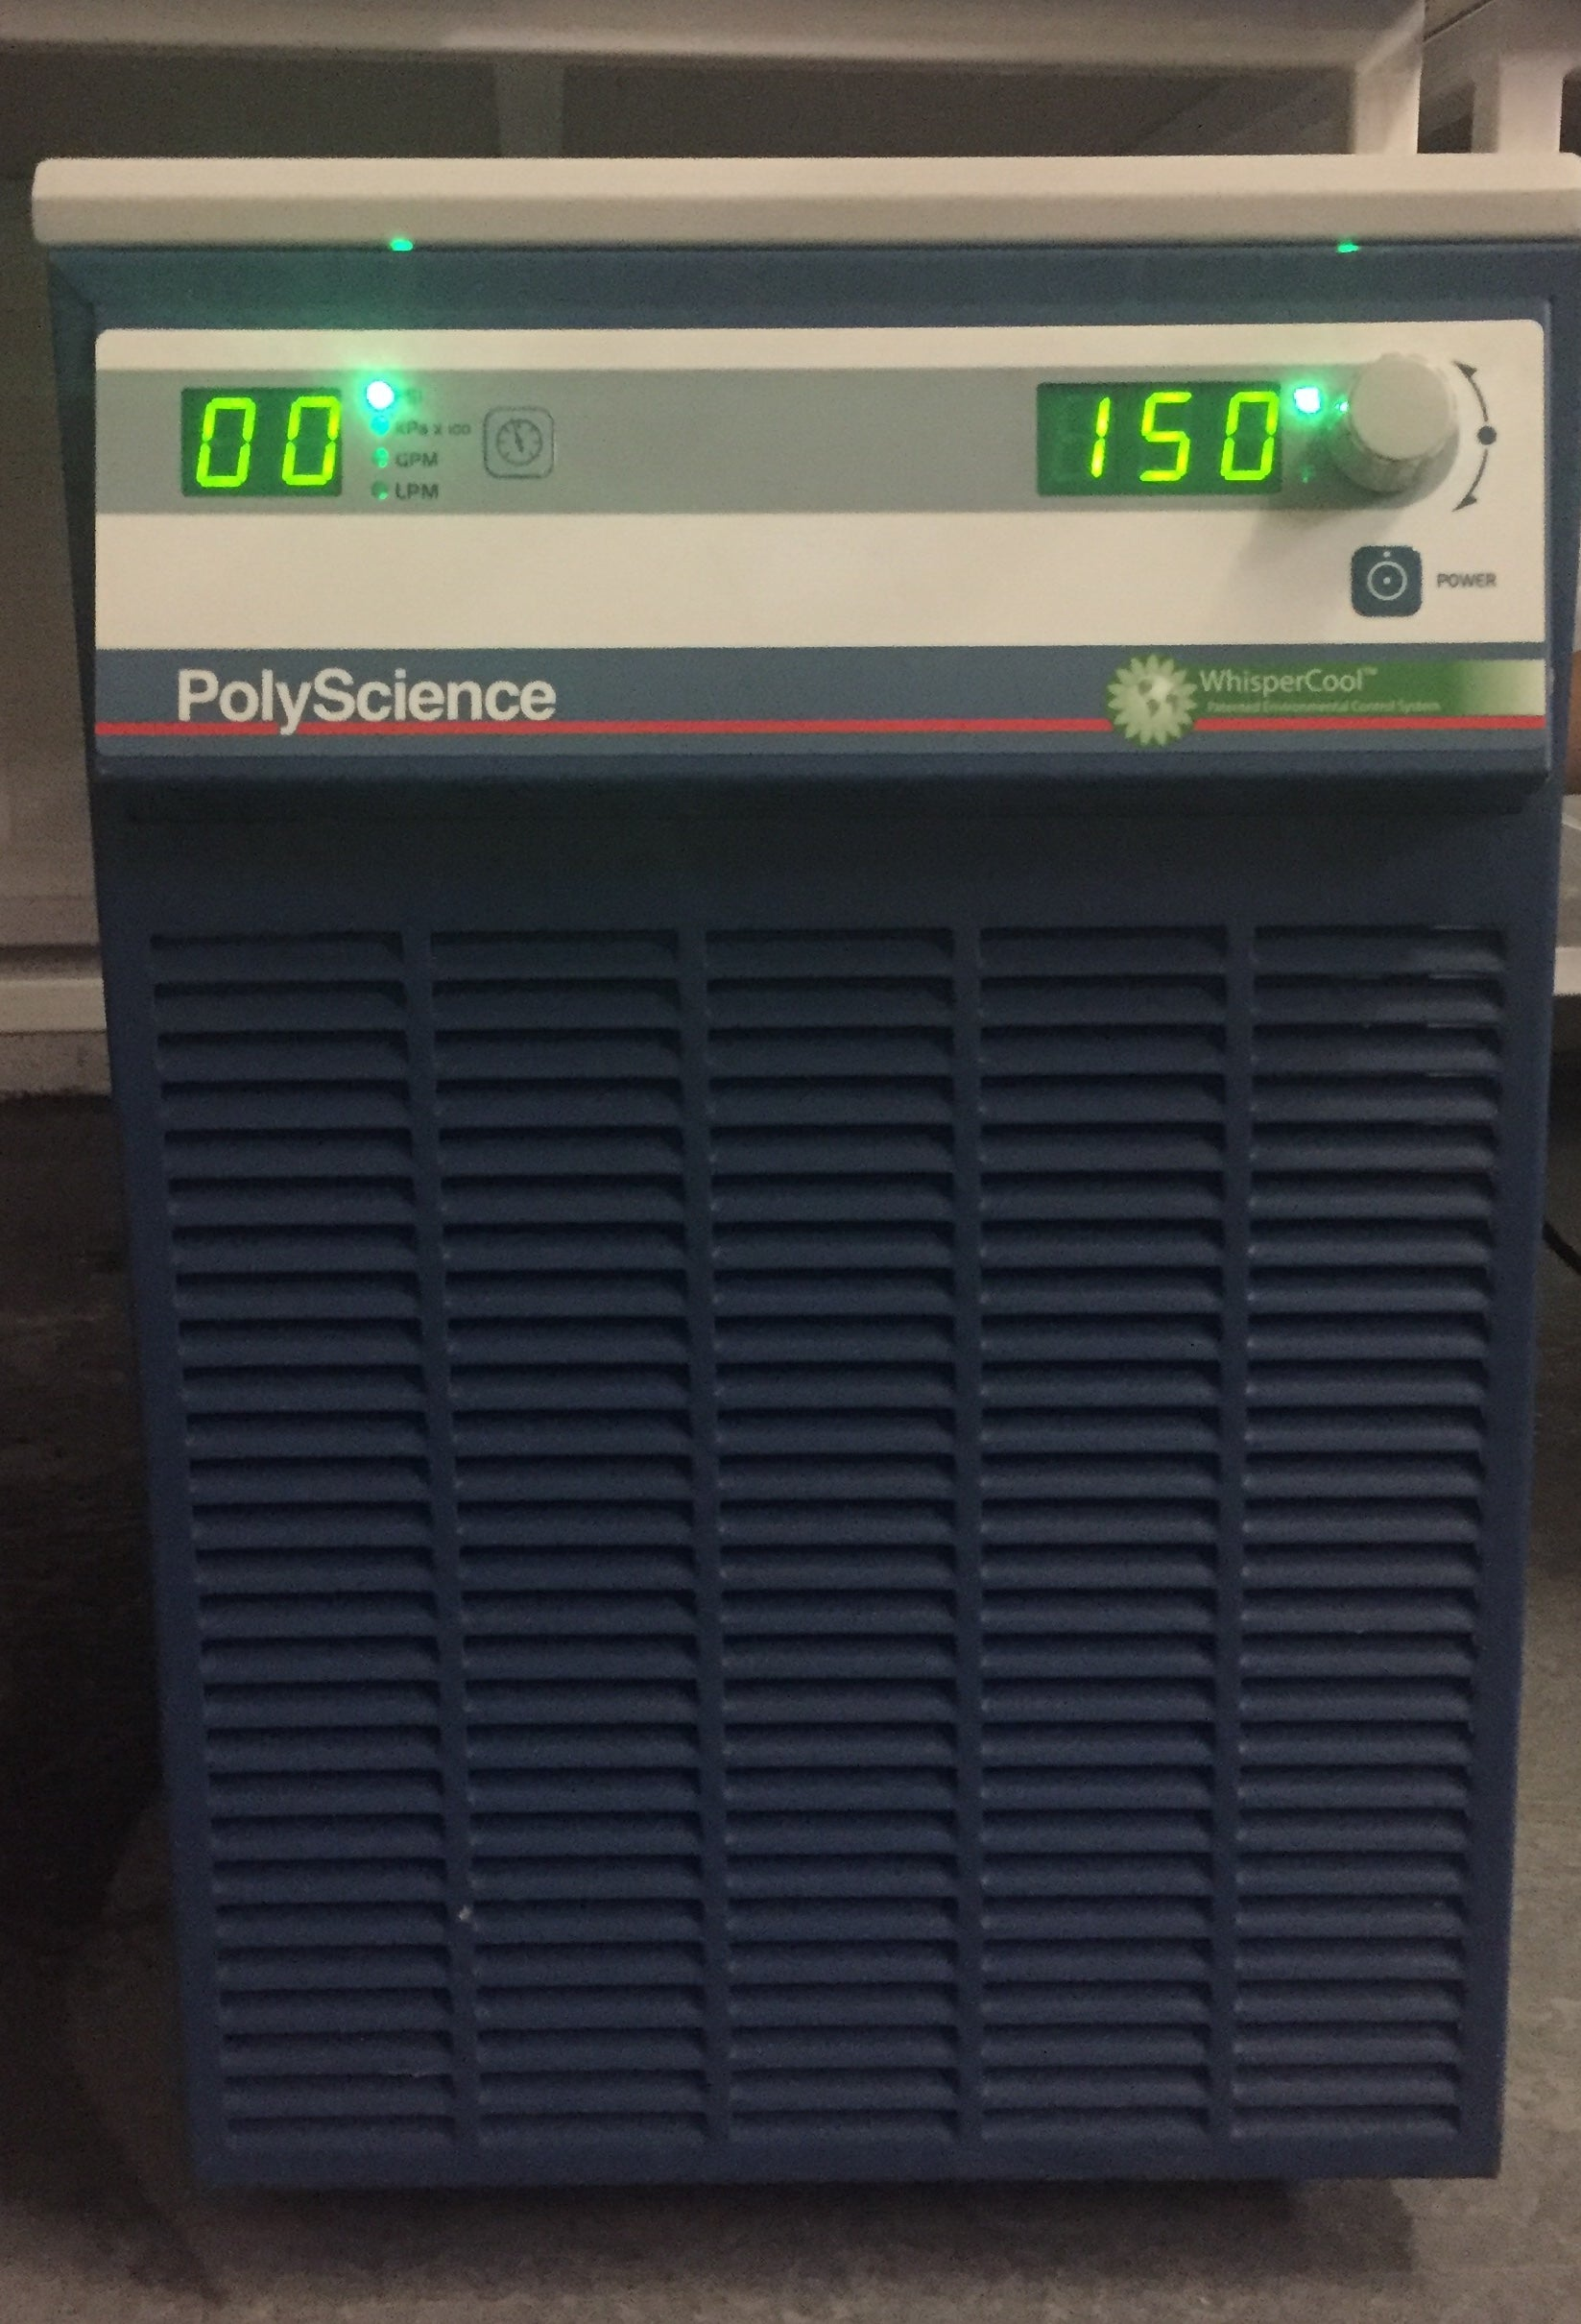 PolyScience Chiller Digital Display